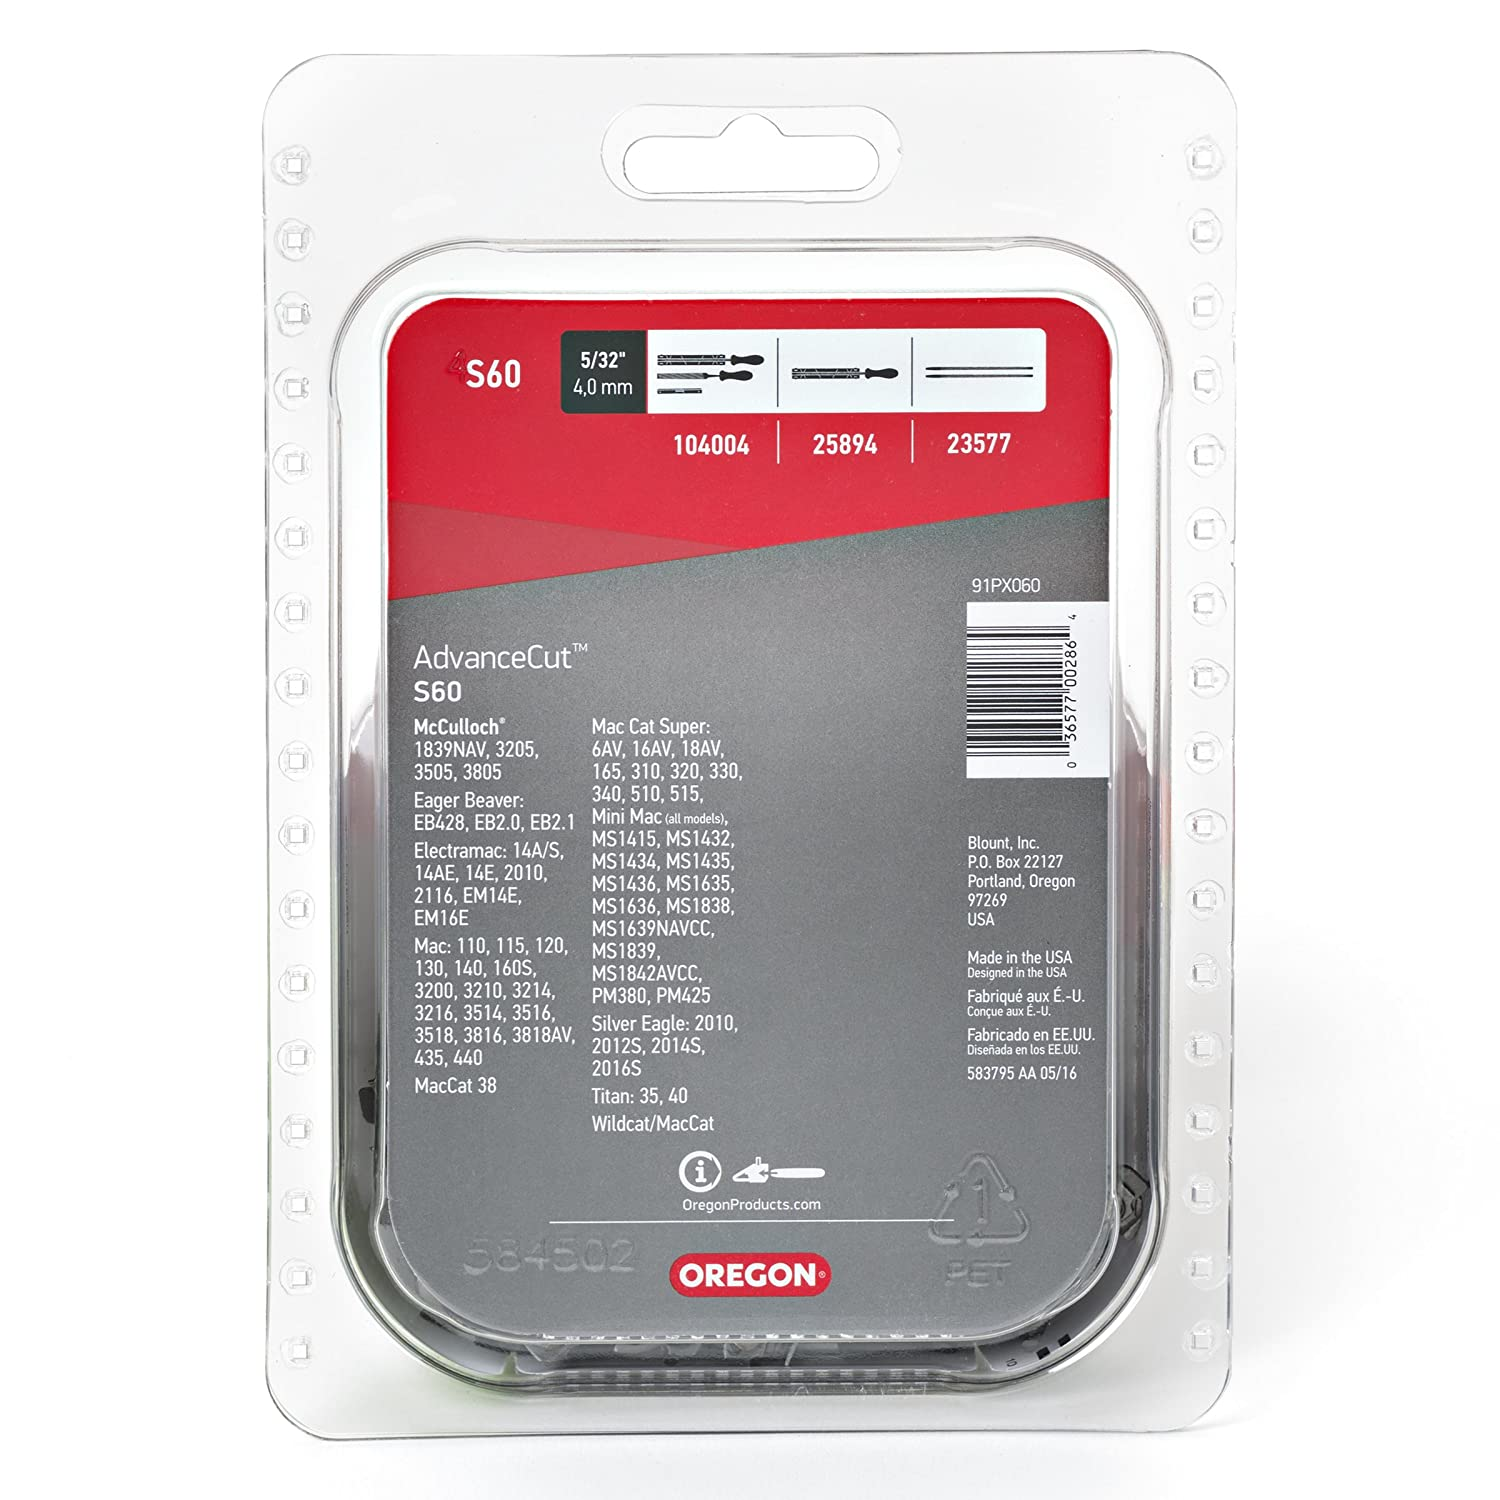 Amazon.com: Oregon S60 AdvanceCut 18-Inch Semi Chisel Chainsaw Chain Fits  McCulloch, Troy-Bilt: OREGON CUTTING SYSTEMS: Garden & Outdoor